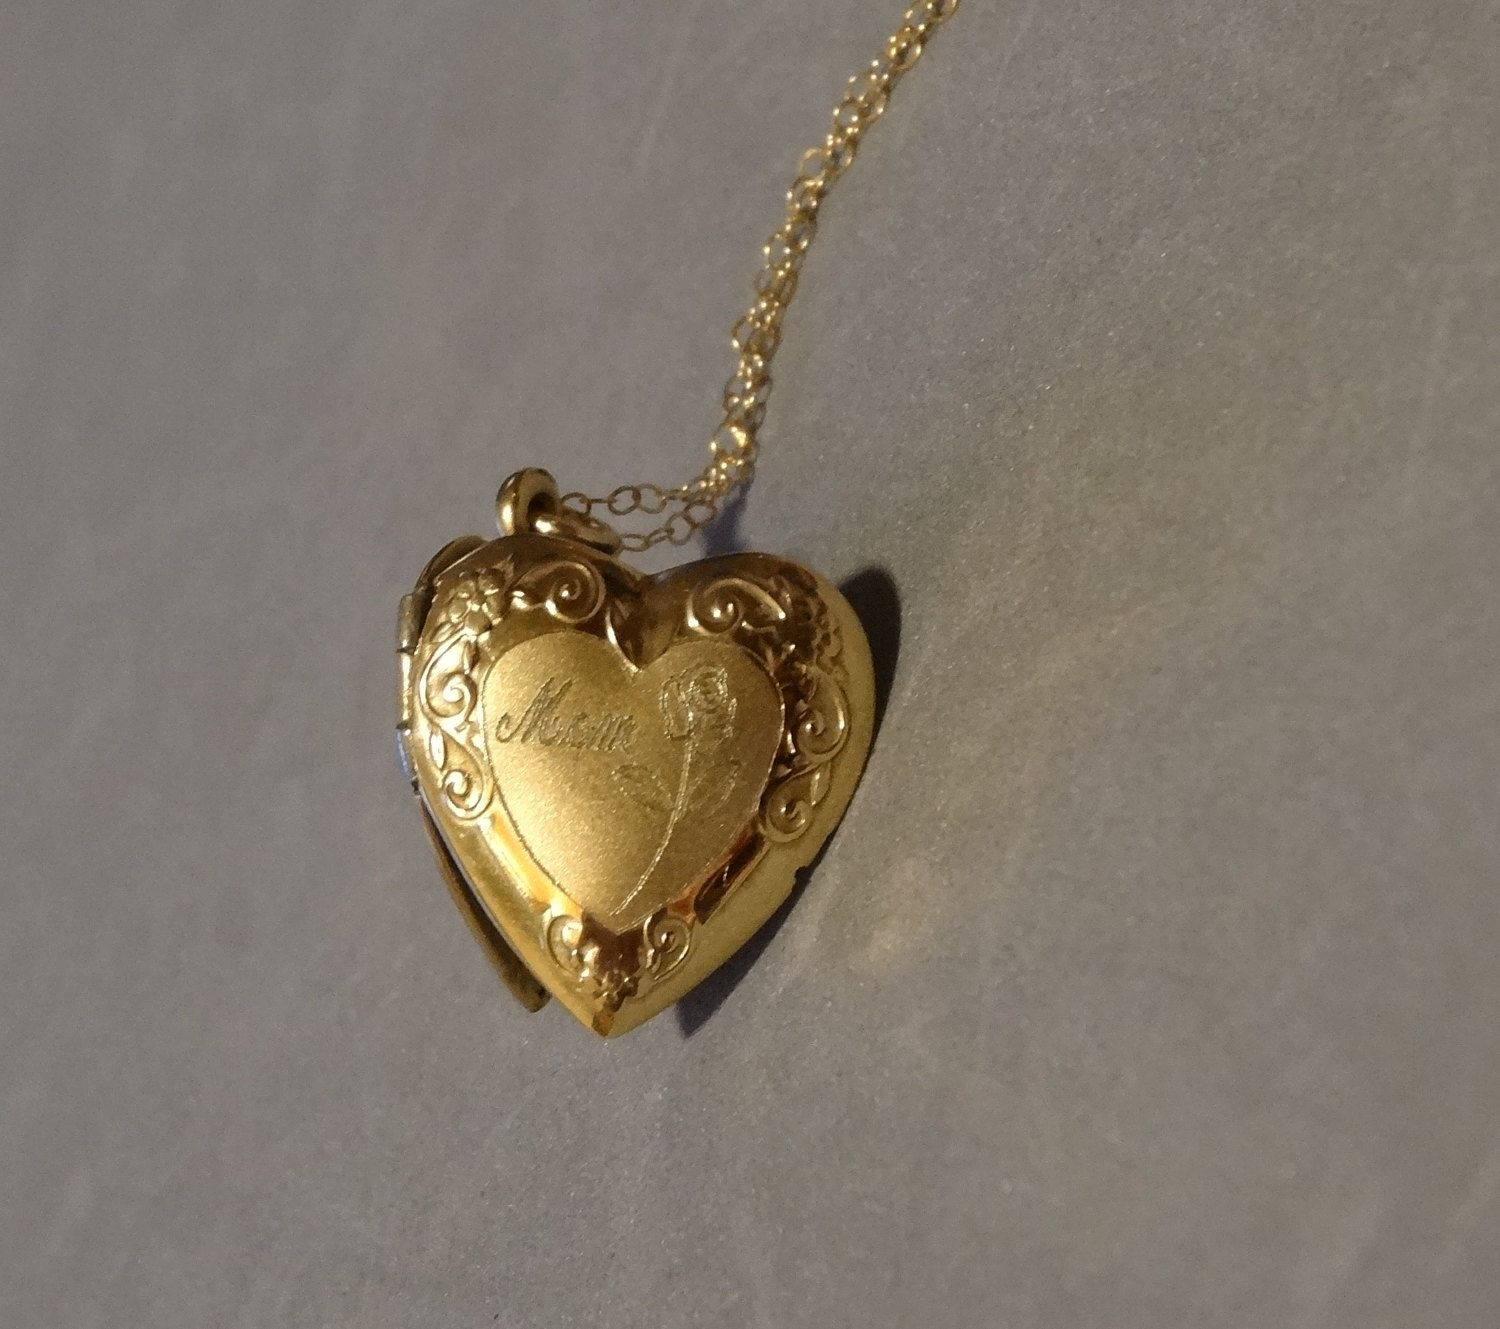 Vintage mom gold heart locket necklace w rose 14k gold filled etsy your place to buy and sell all things handmade aloadofball Choice Image